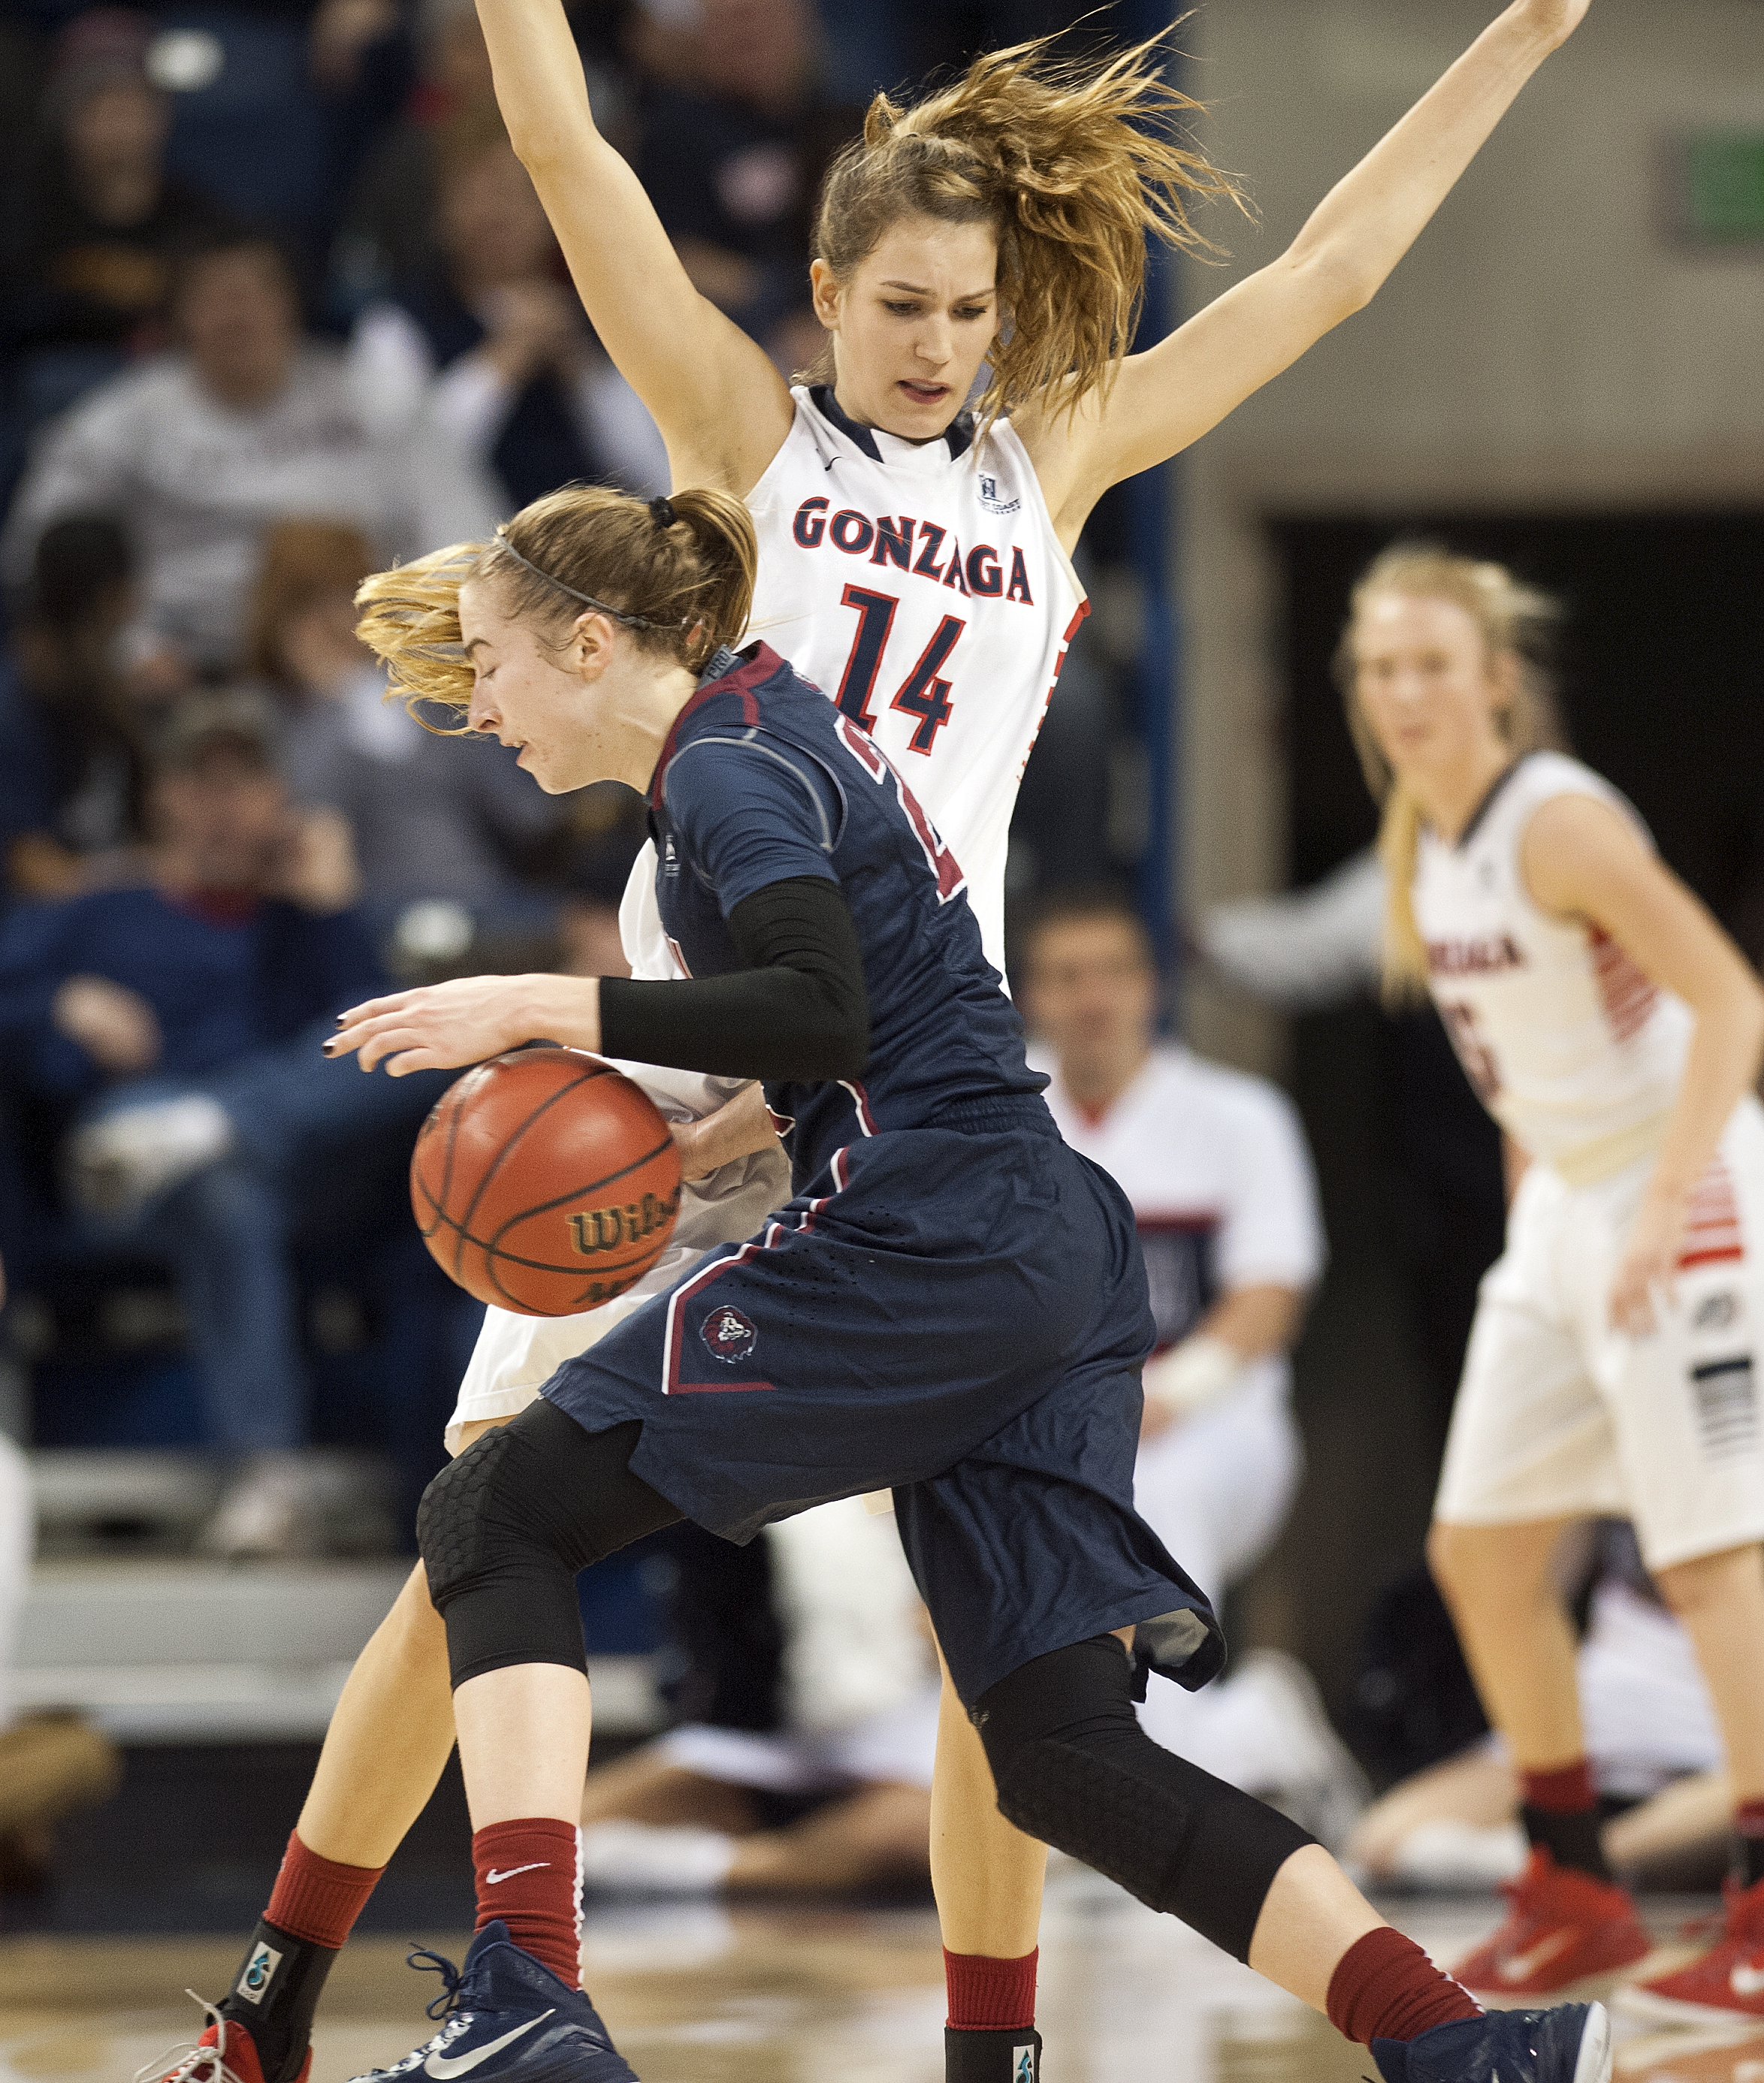 Q & A with Gonzaga women's basketball player Sunny ...